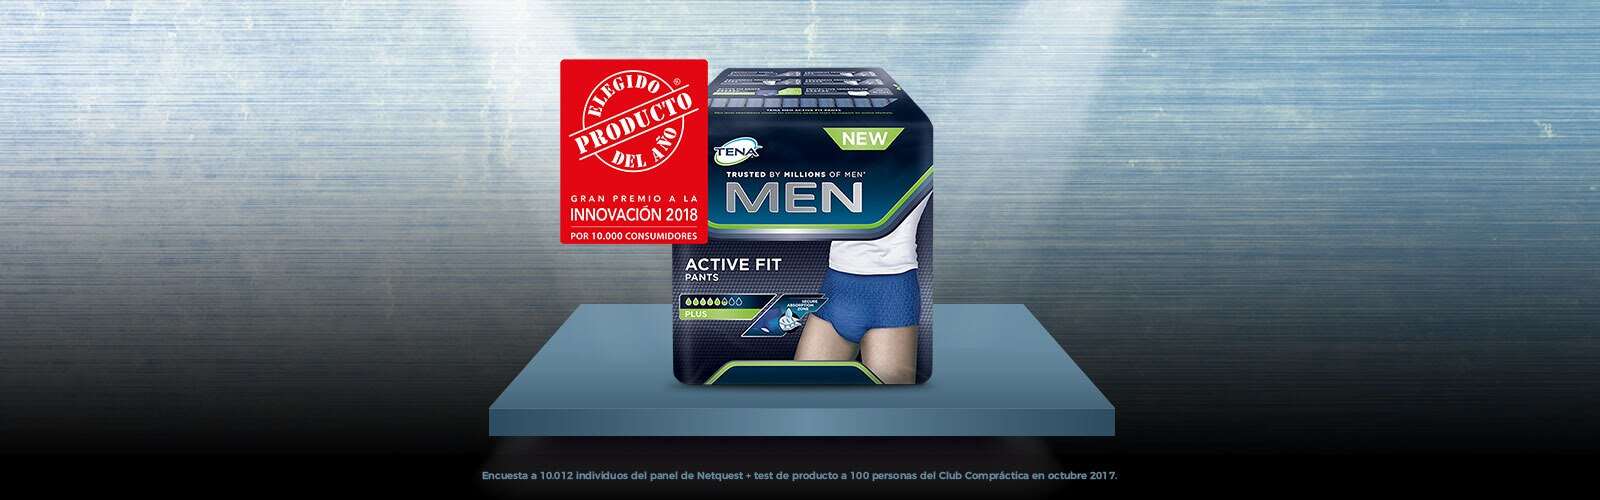 TENA Men Active Fit Pants Plus, Producto del Año 2018